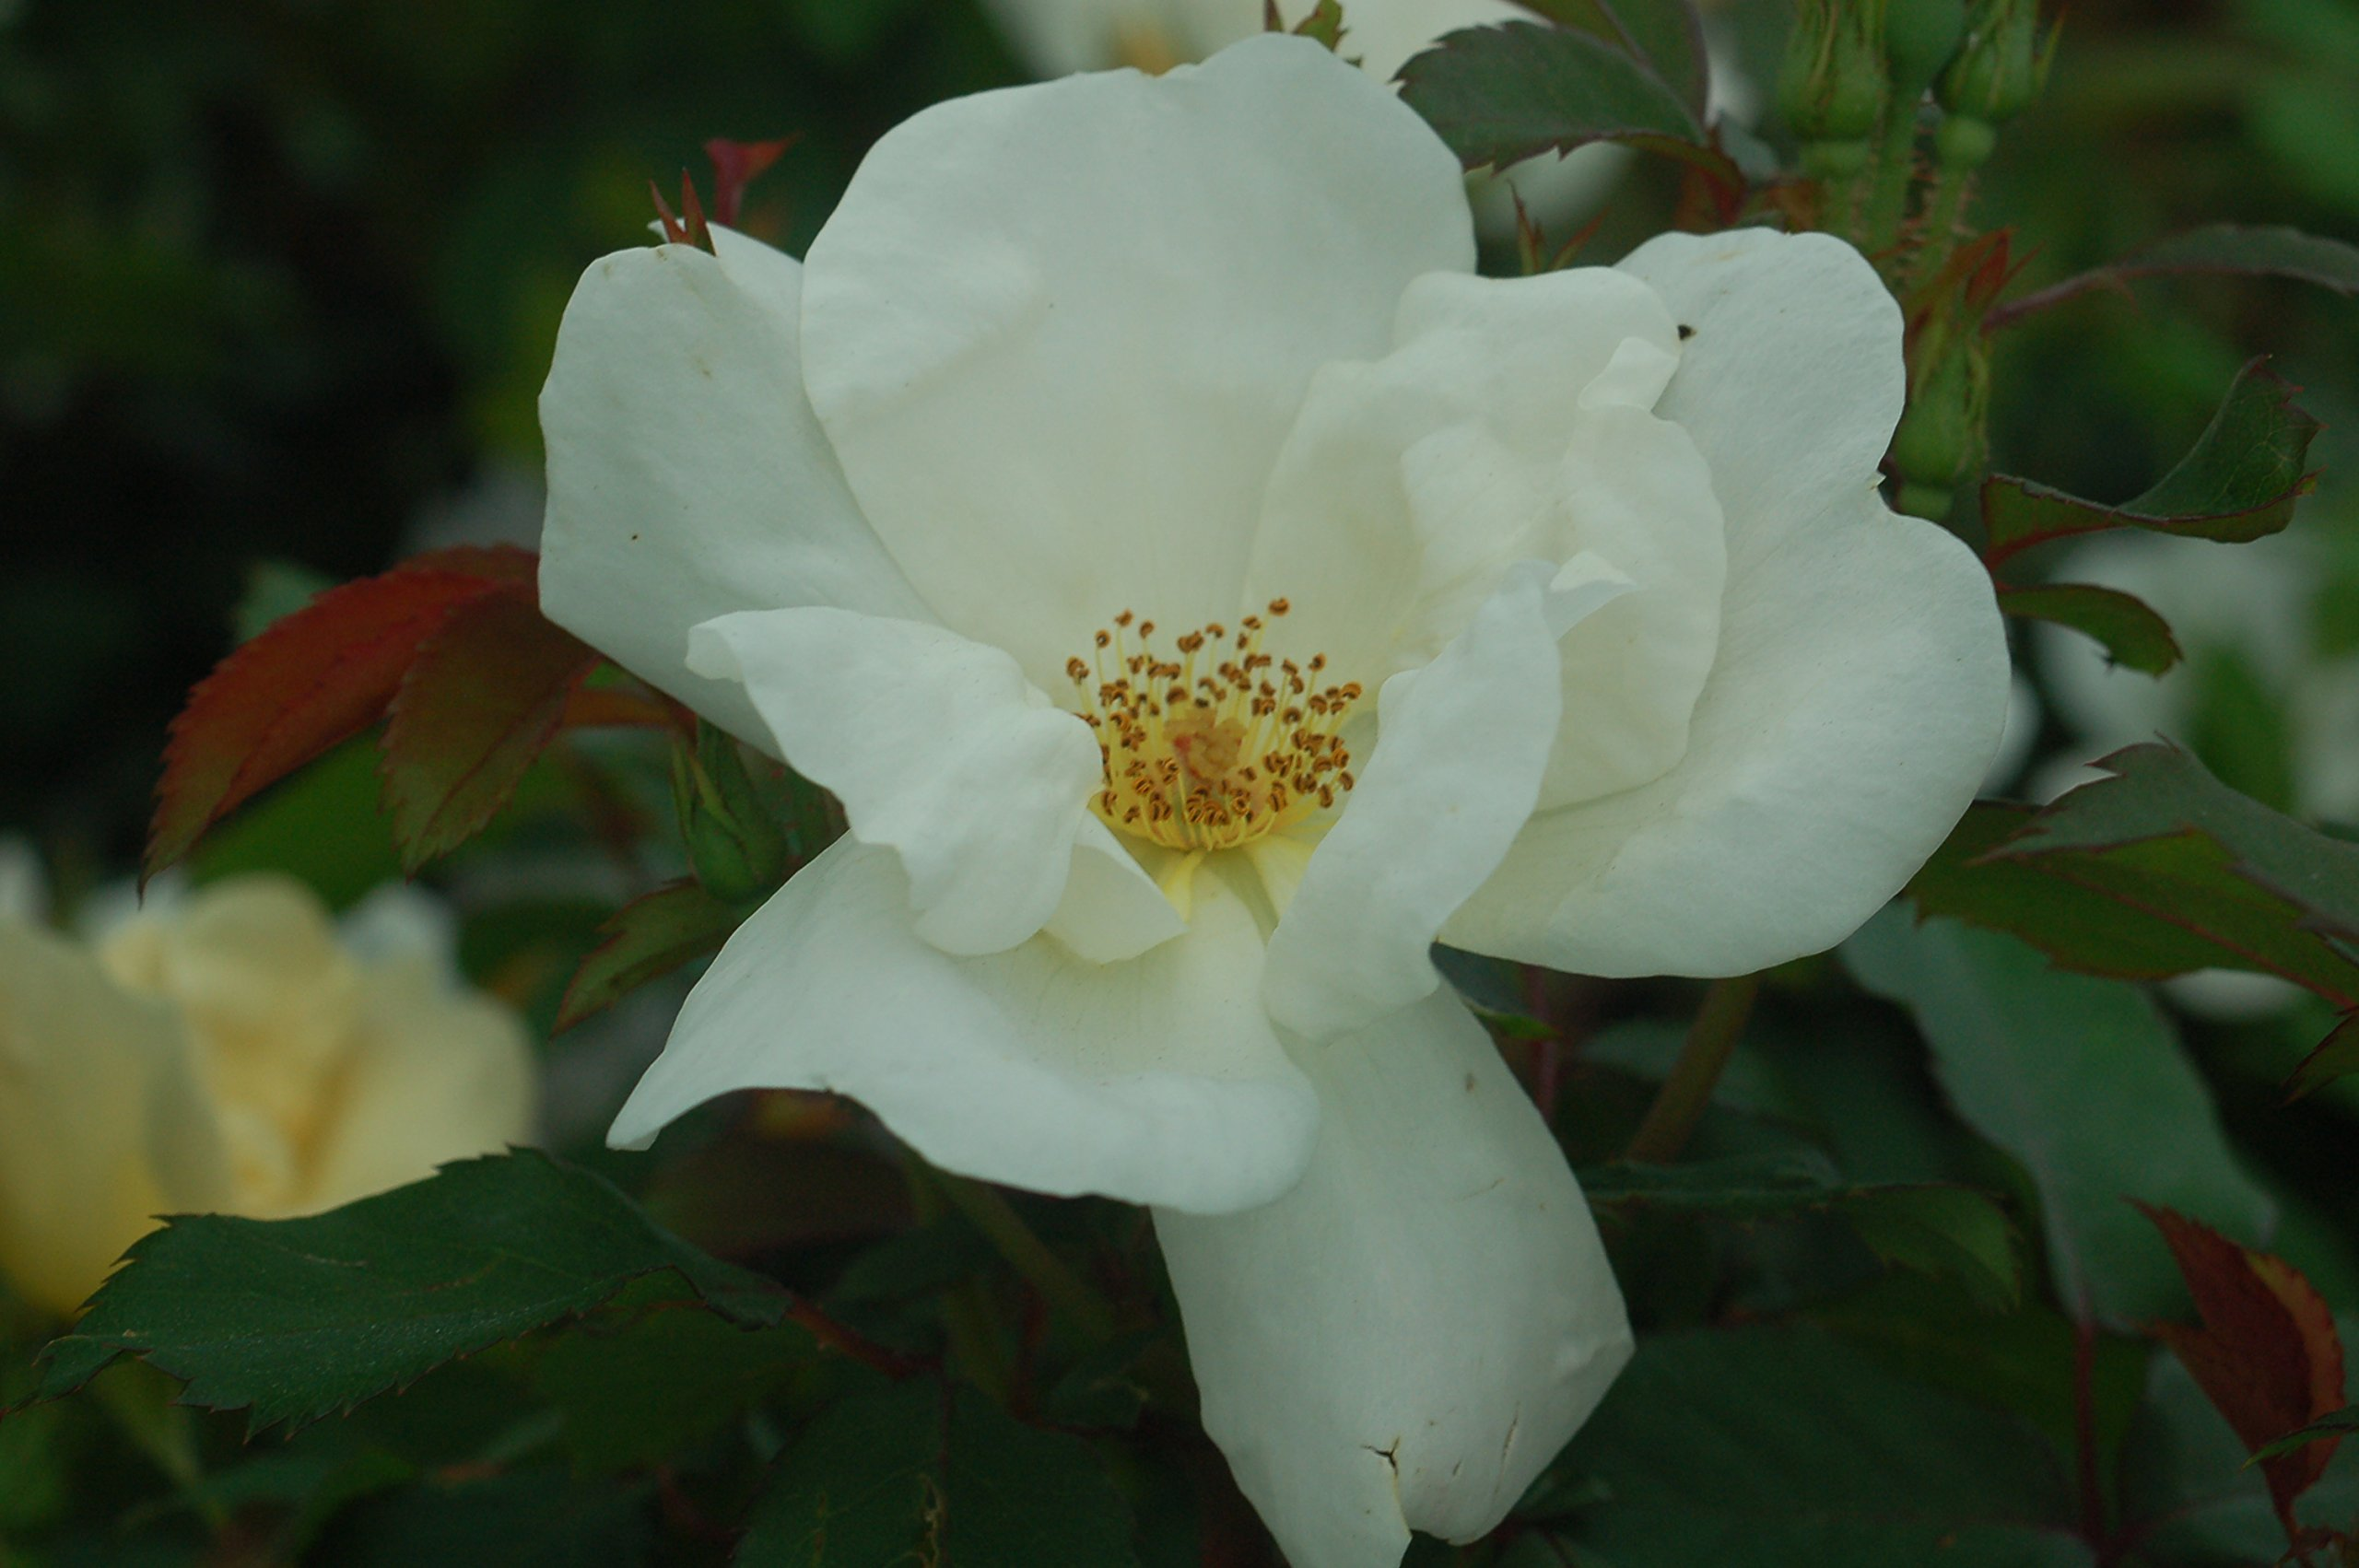 Knock Out Roses - Rosa White Knock Out (Rose) Rose, white flowers, #3 - Size Container by Green Promise Farms (Image #2)